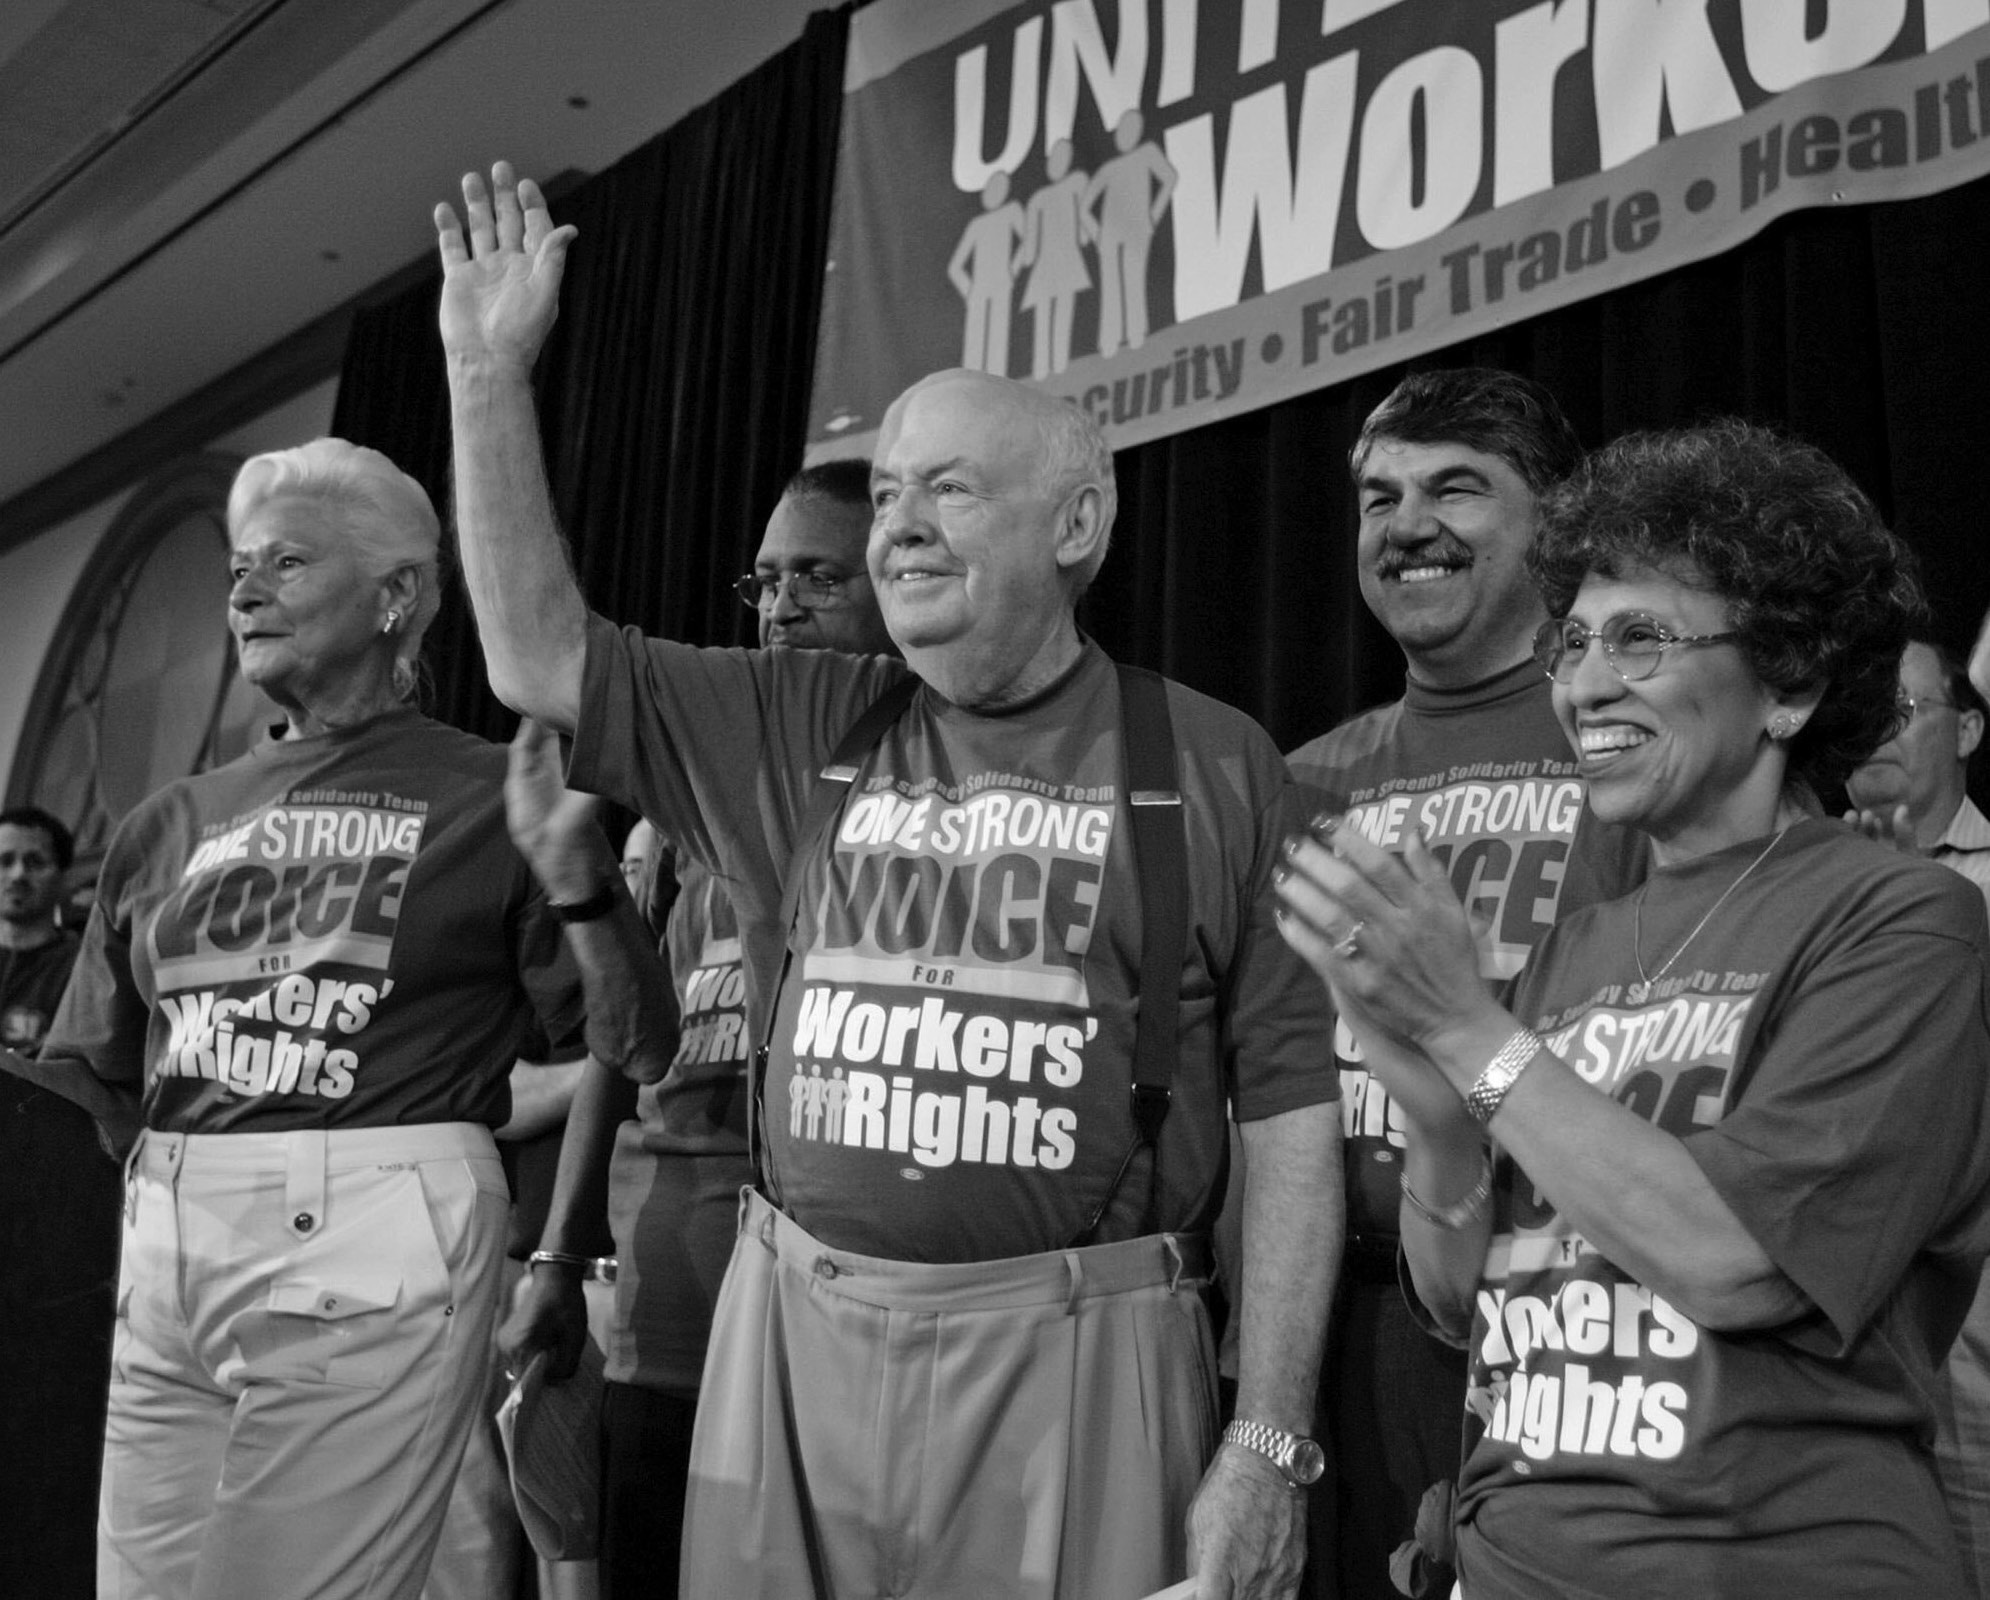 John Sweeney, center, after speaking at a union solidarity rally in Chicago in 2005. At right was his deputy, Linda Chavez-Thompson, executive vice president of the A.F.L.-C.I.O. Behind him, at right, was his eventual successor, Richard L. Trumka. Credit: Brian Kersey/Associated Press